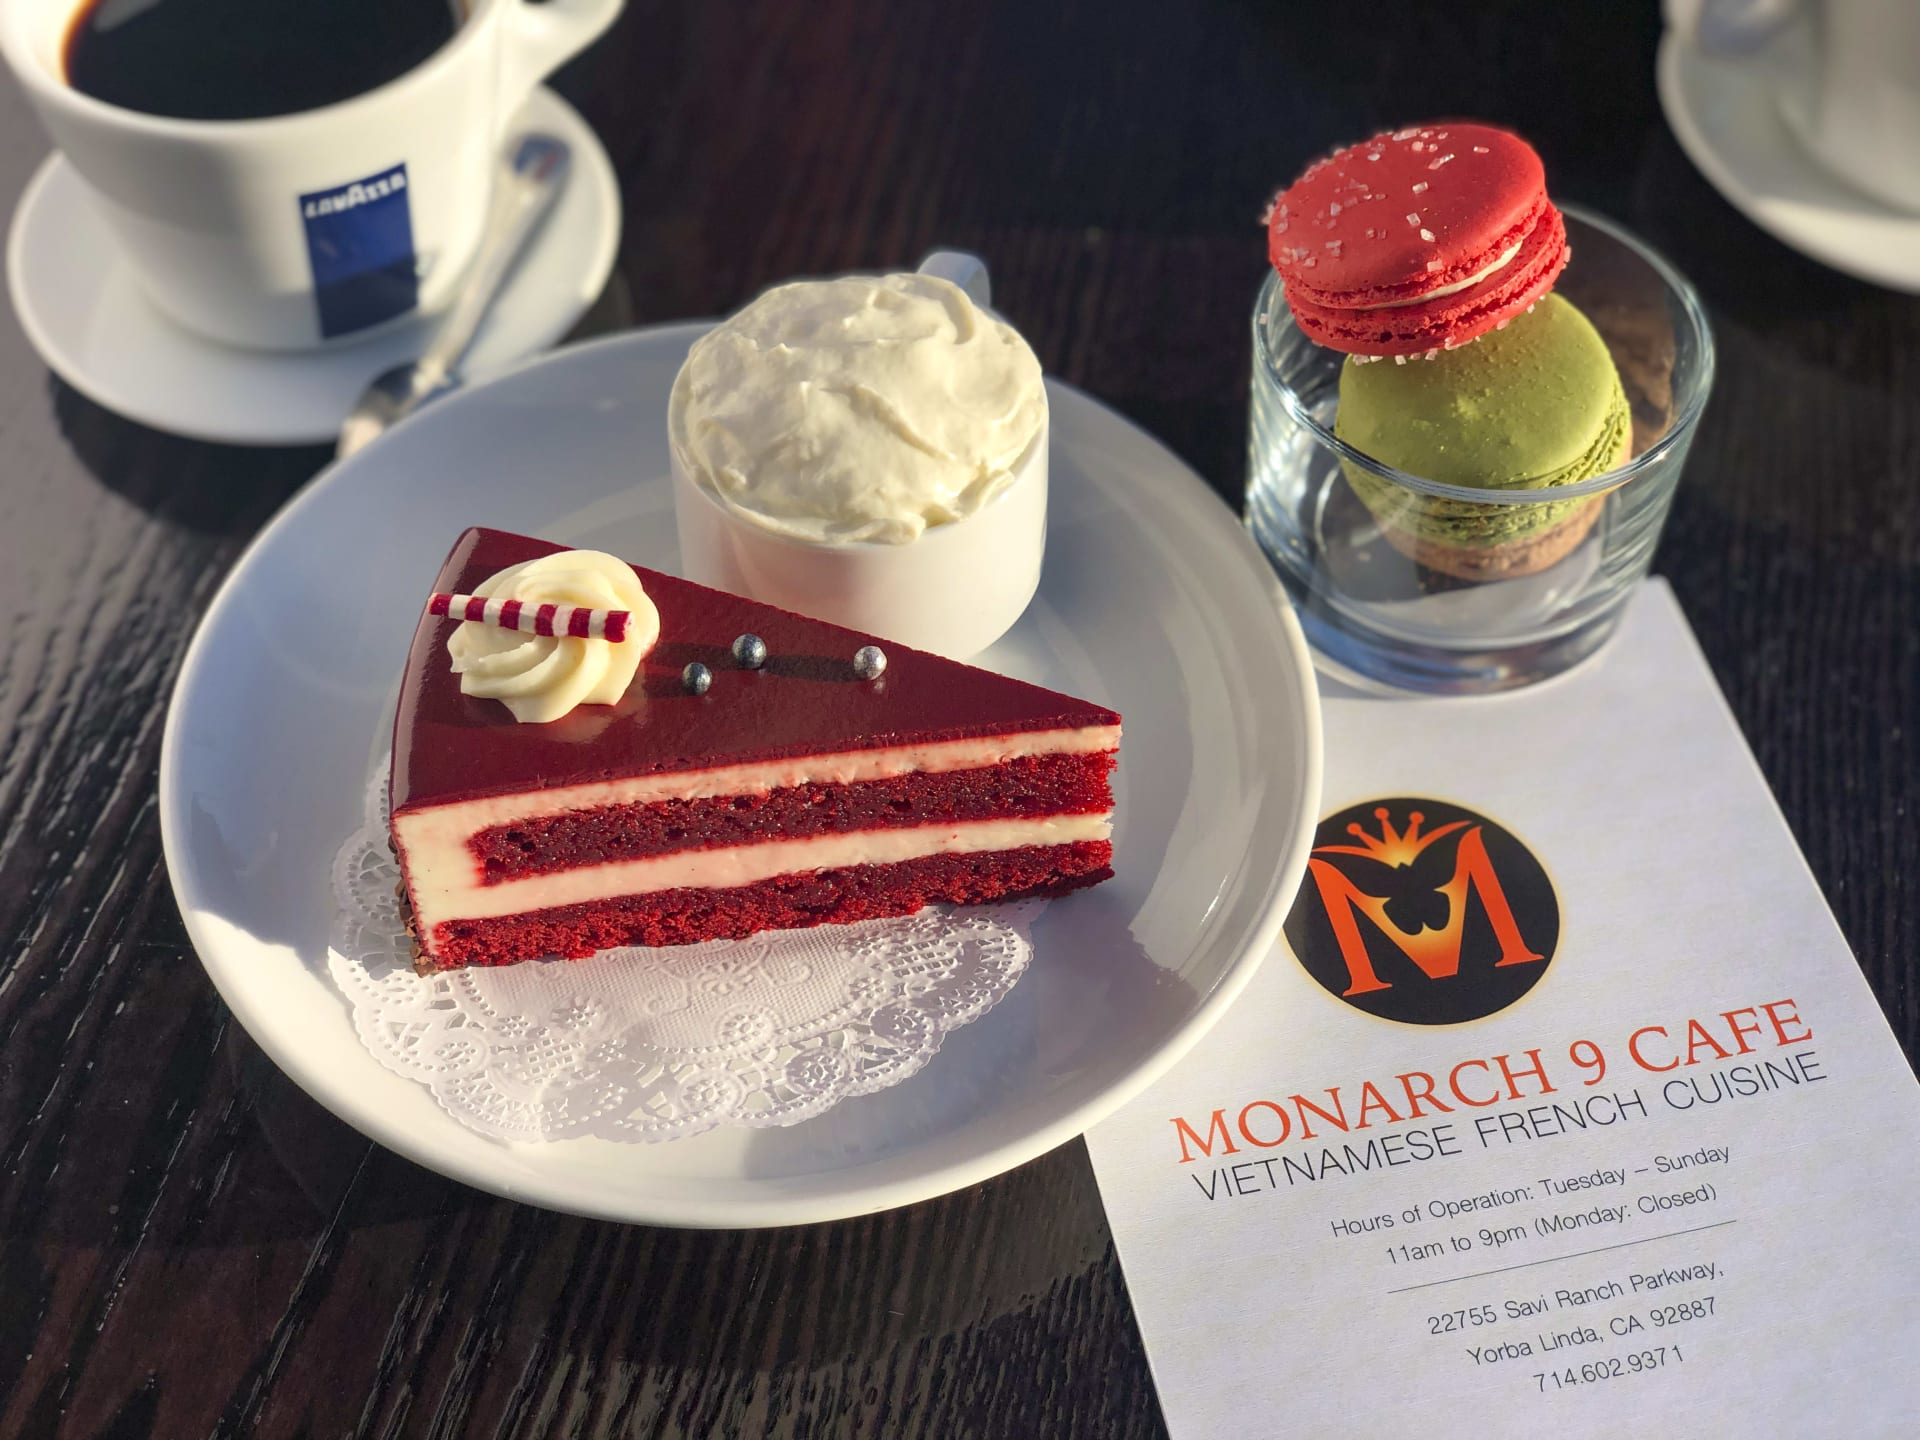 monarch 9 cafe